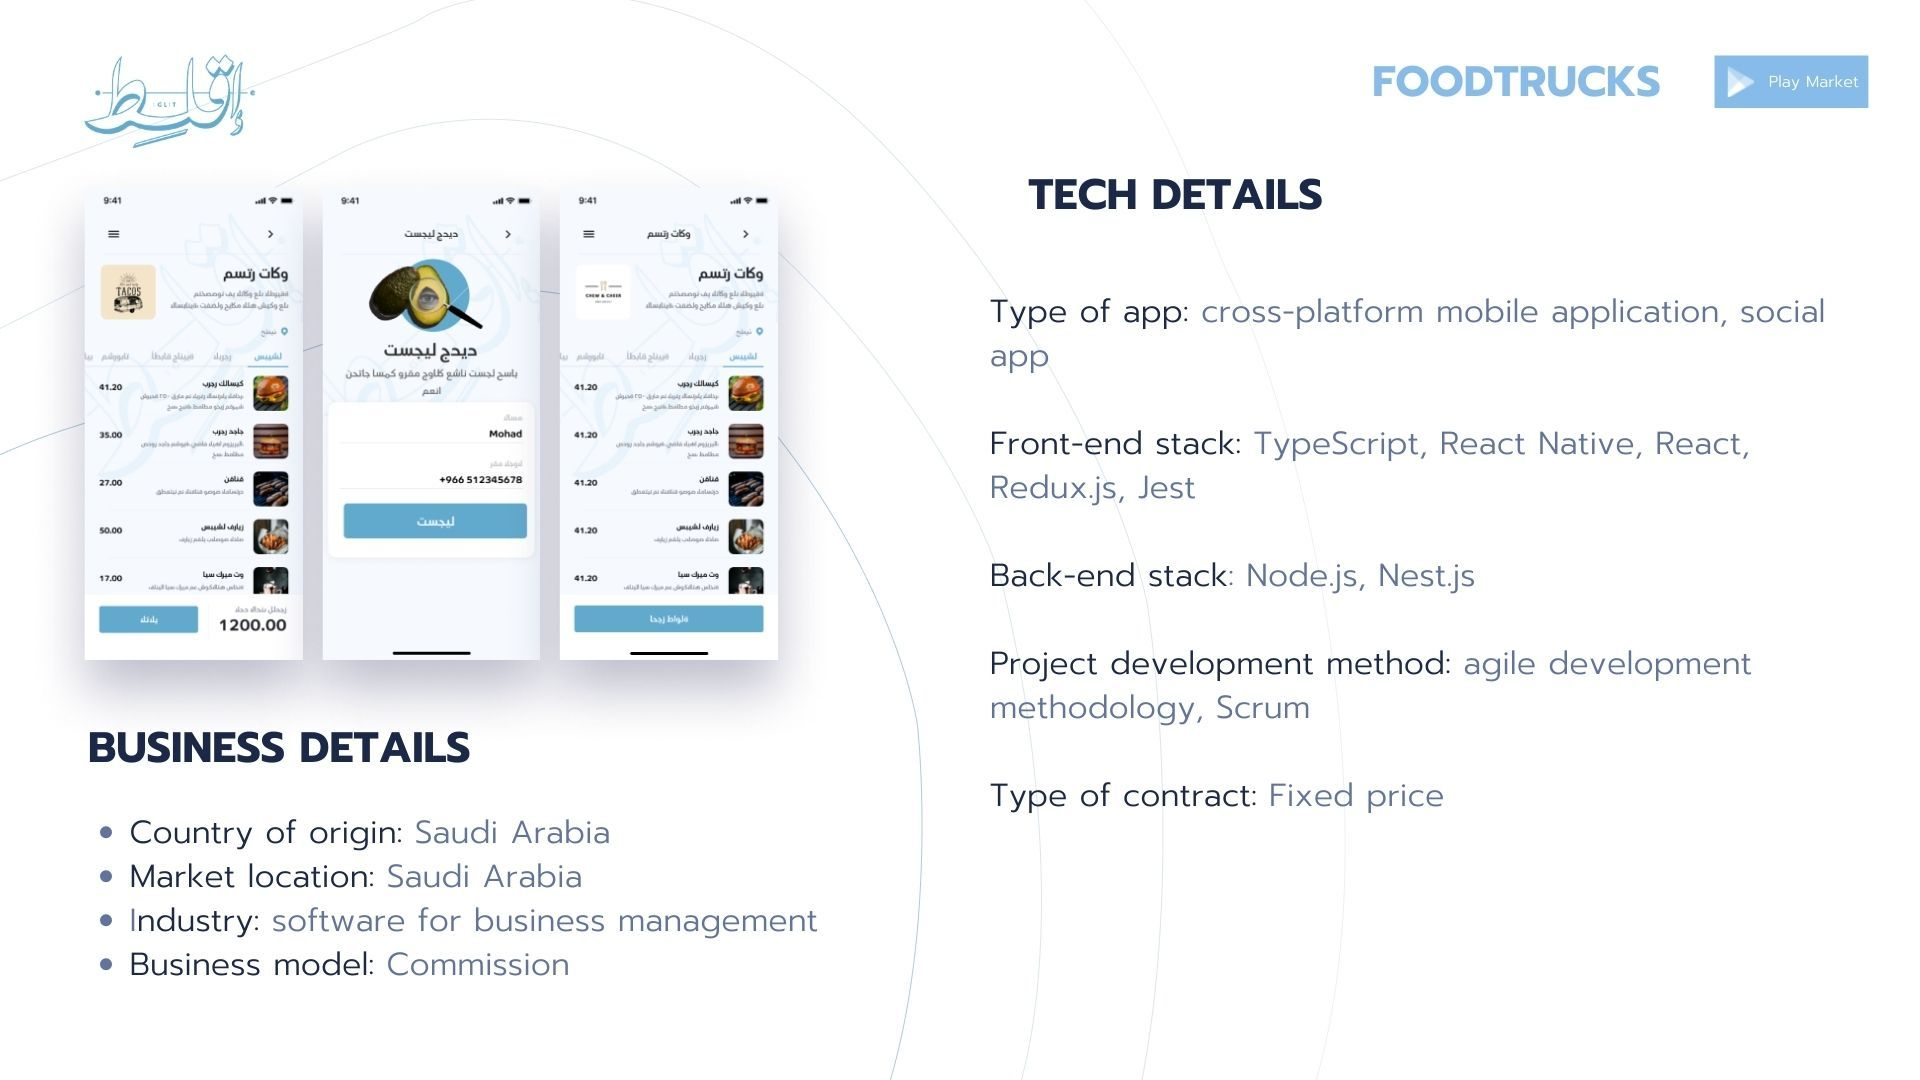 How to Create a Right-To-Left Delivery App: FoodTrucks Case Study